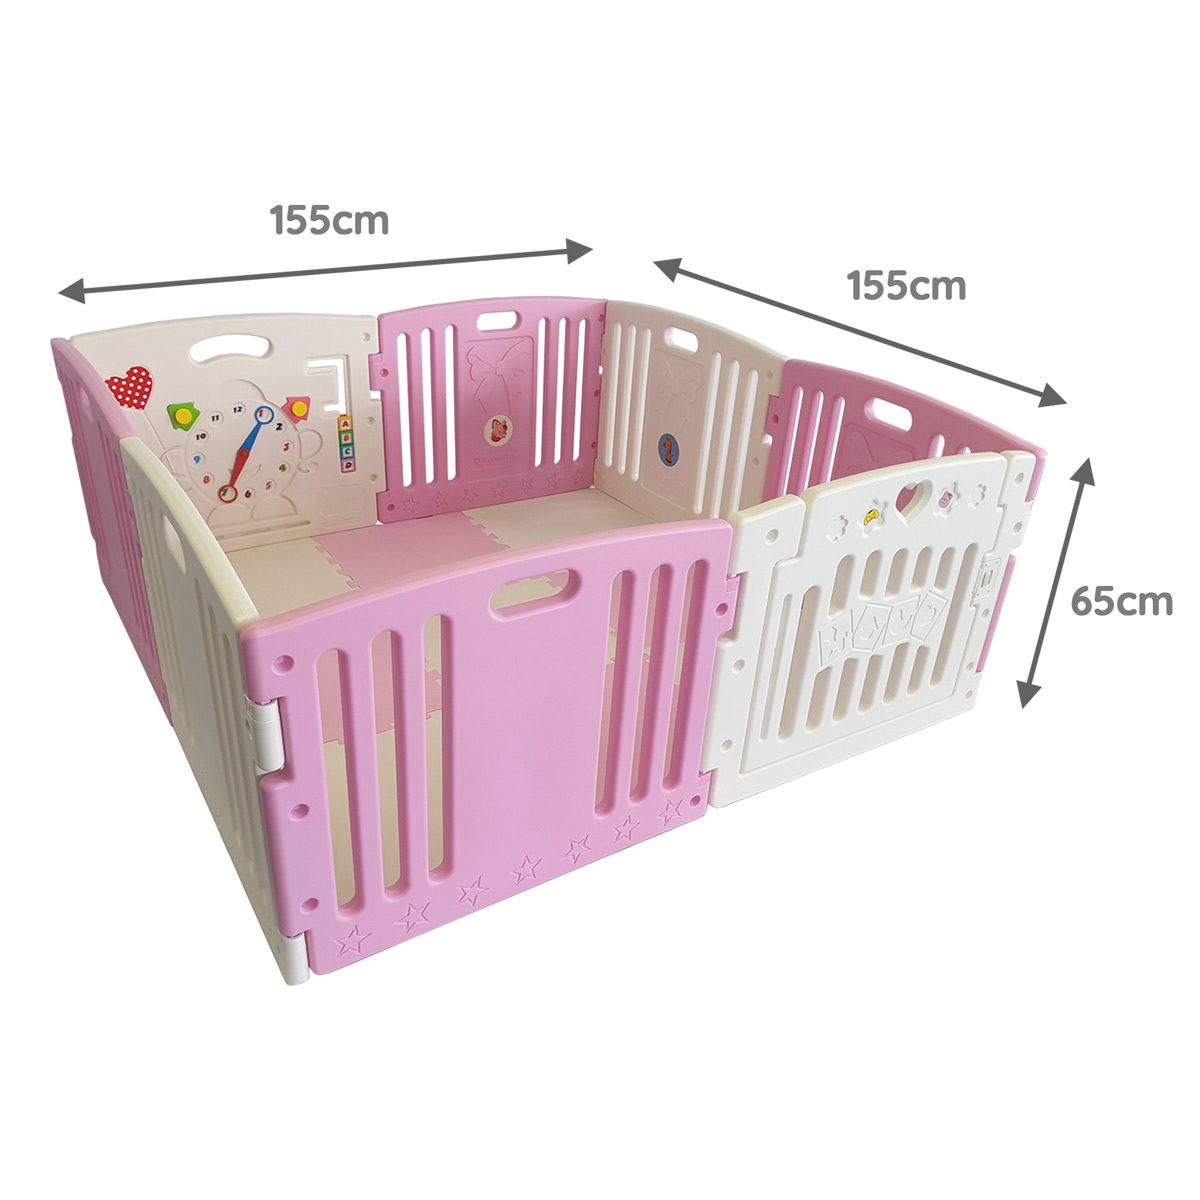 Venture All Stars DUO pink playpen dimensions